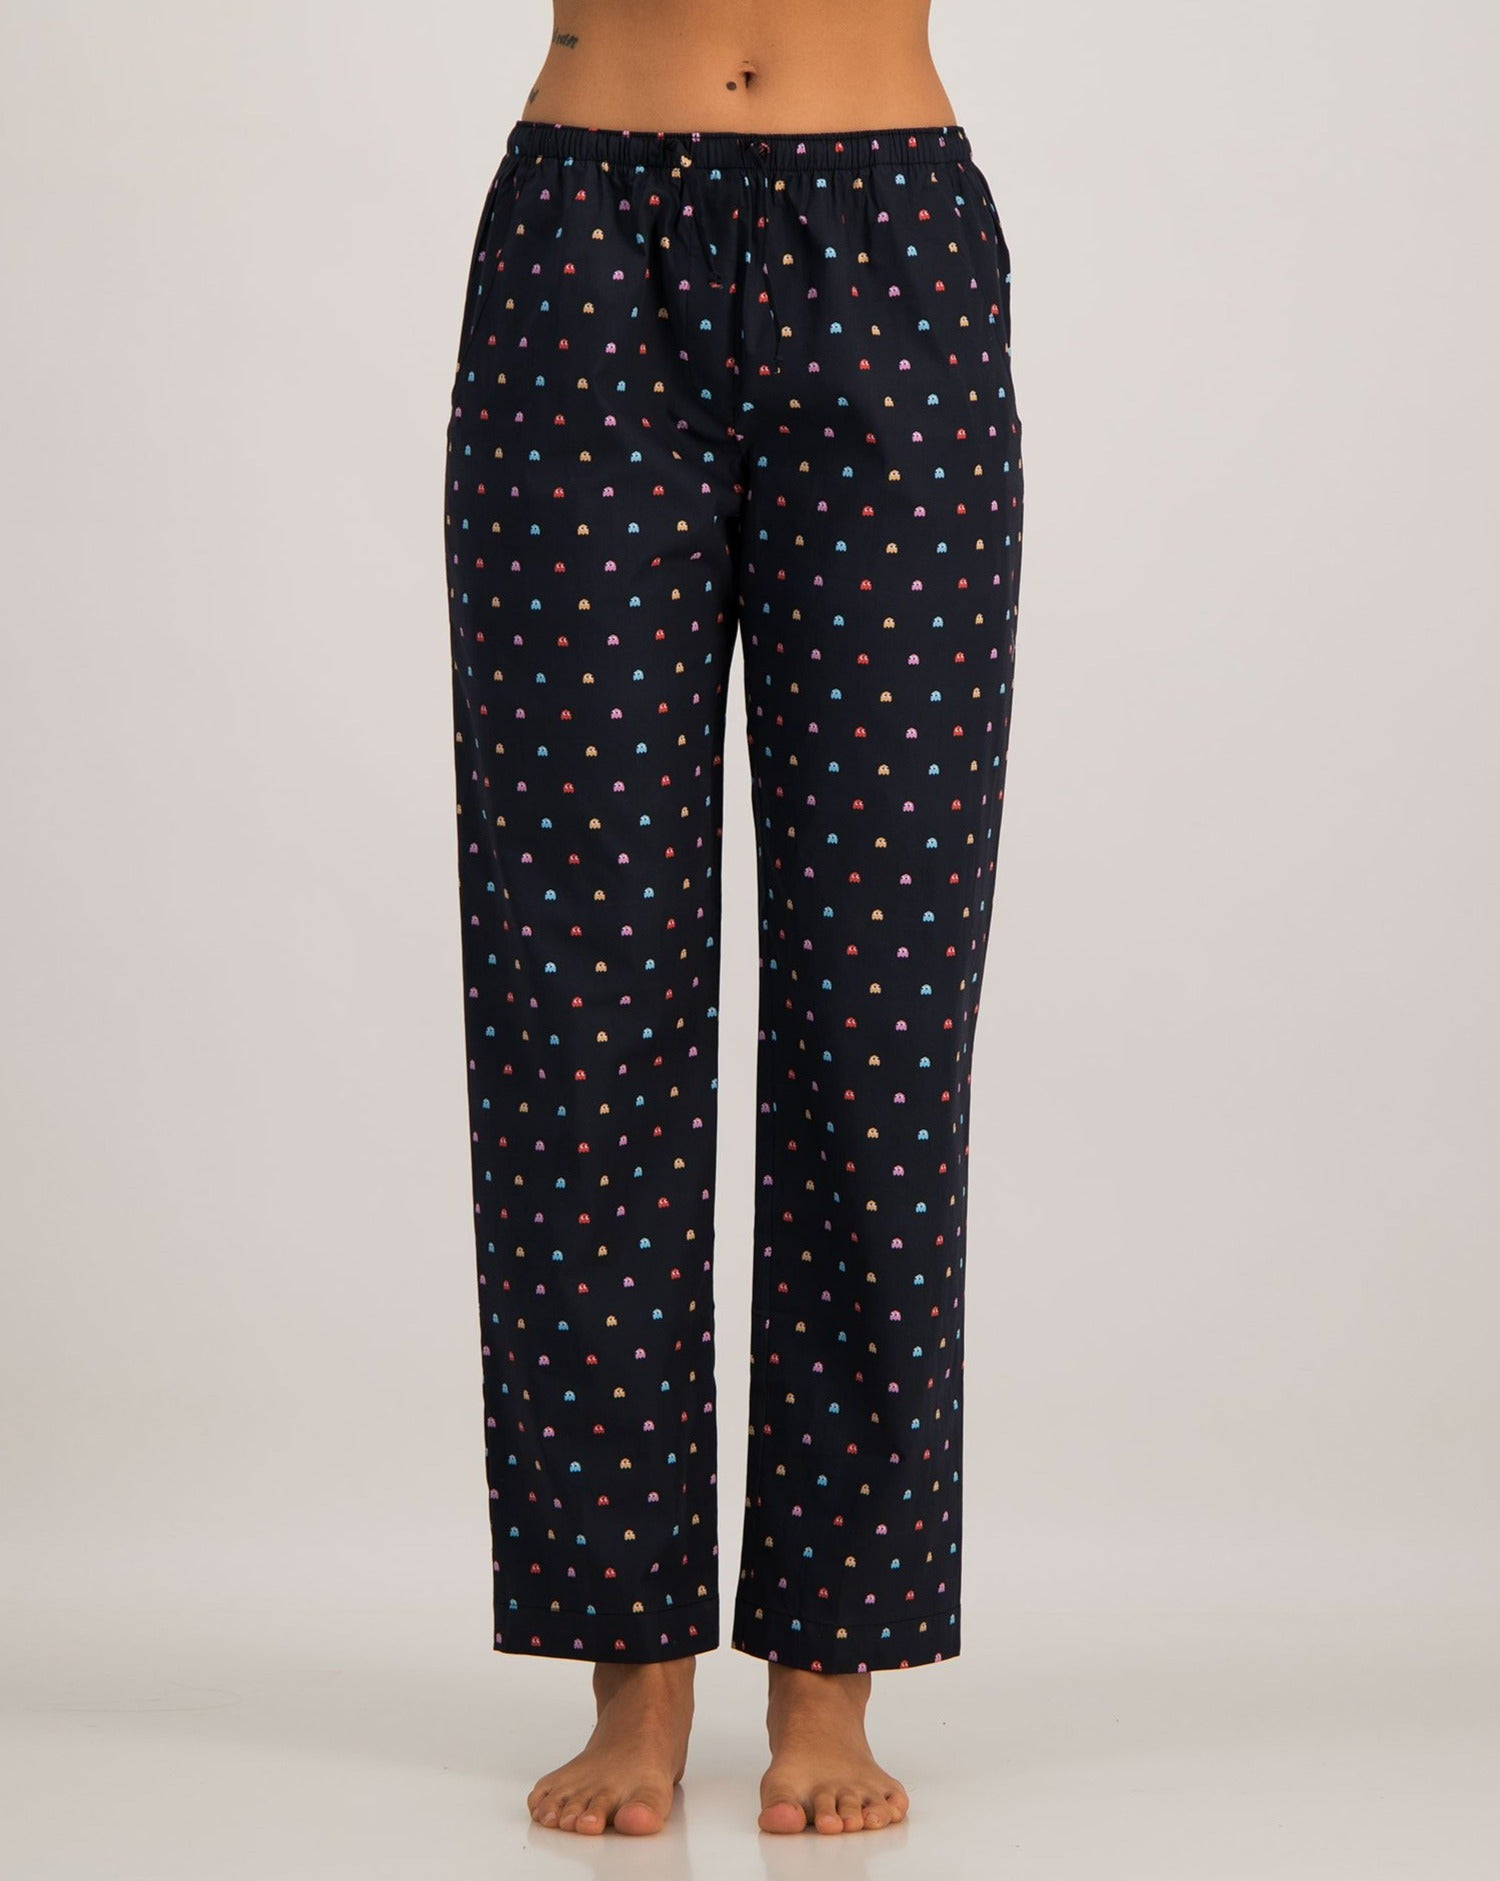 Womens Lounge Pants Pghost